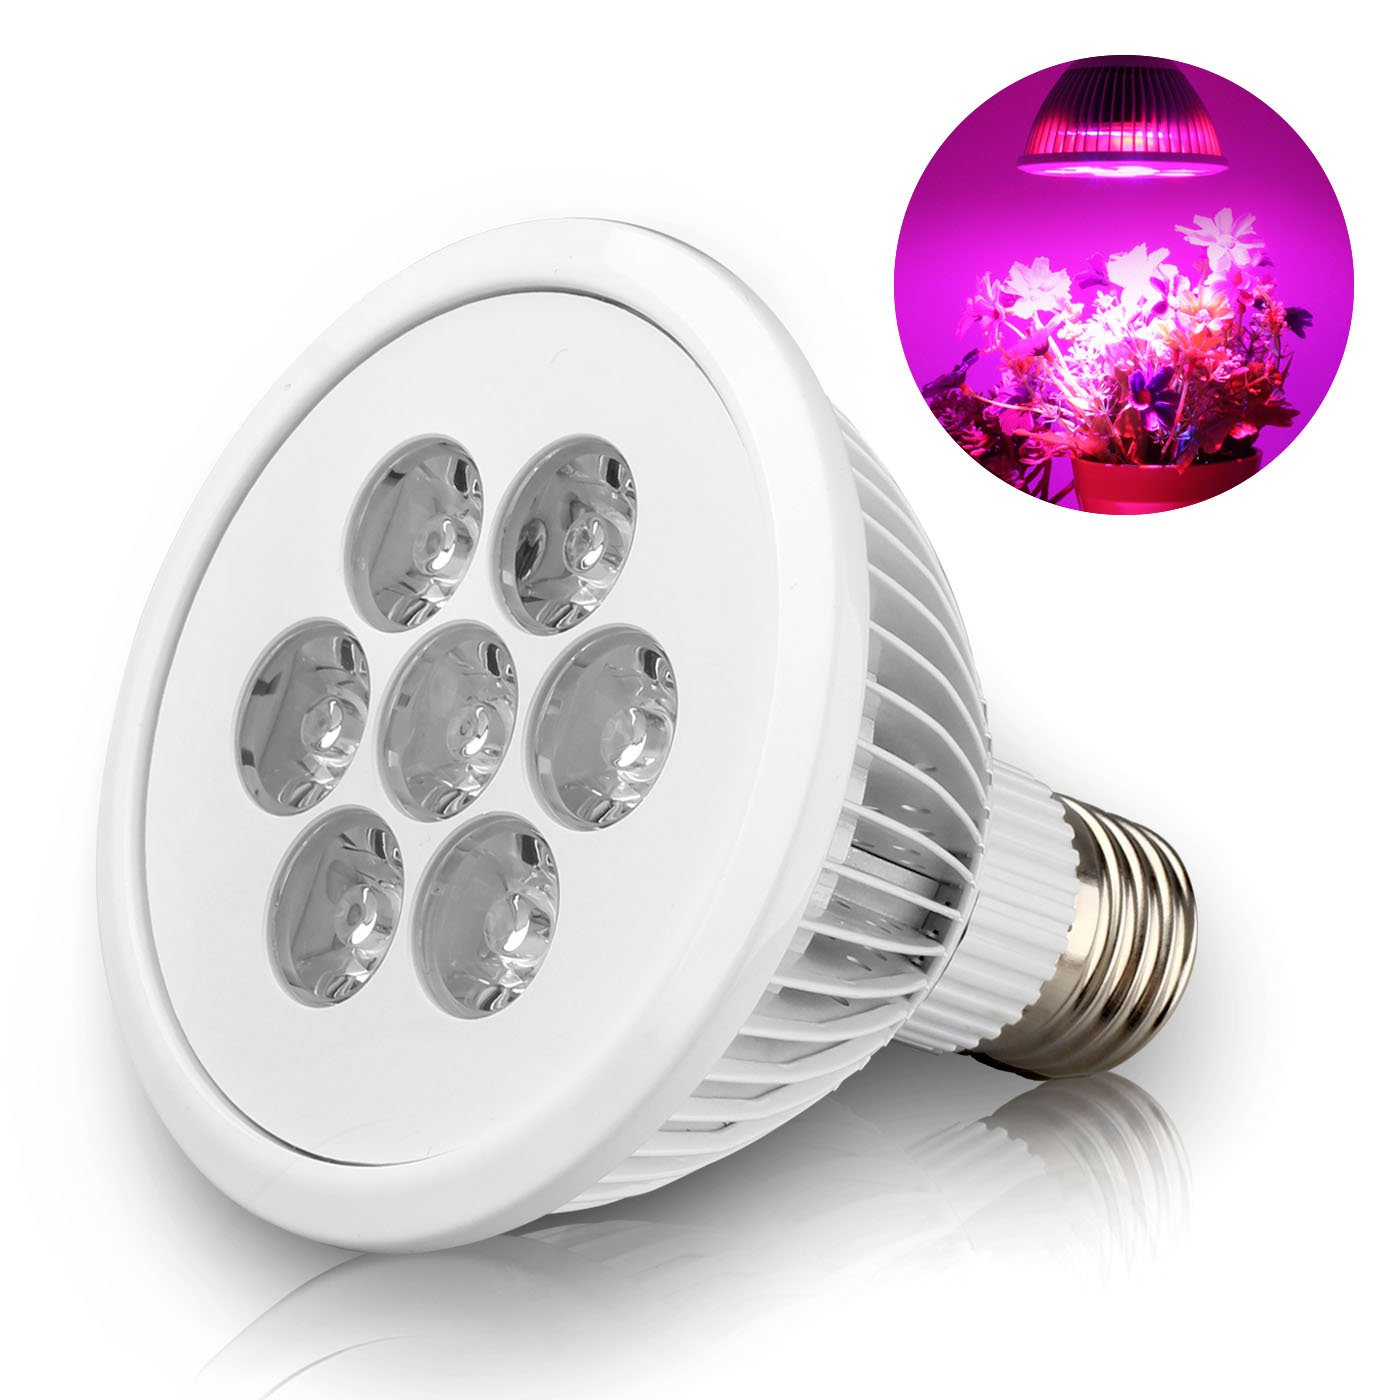 BeeHome LED Plant Grow Light Bulb For Hydroponic Garden Greenhouse